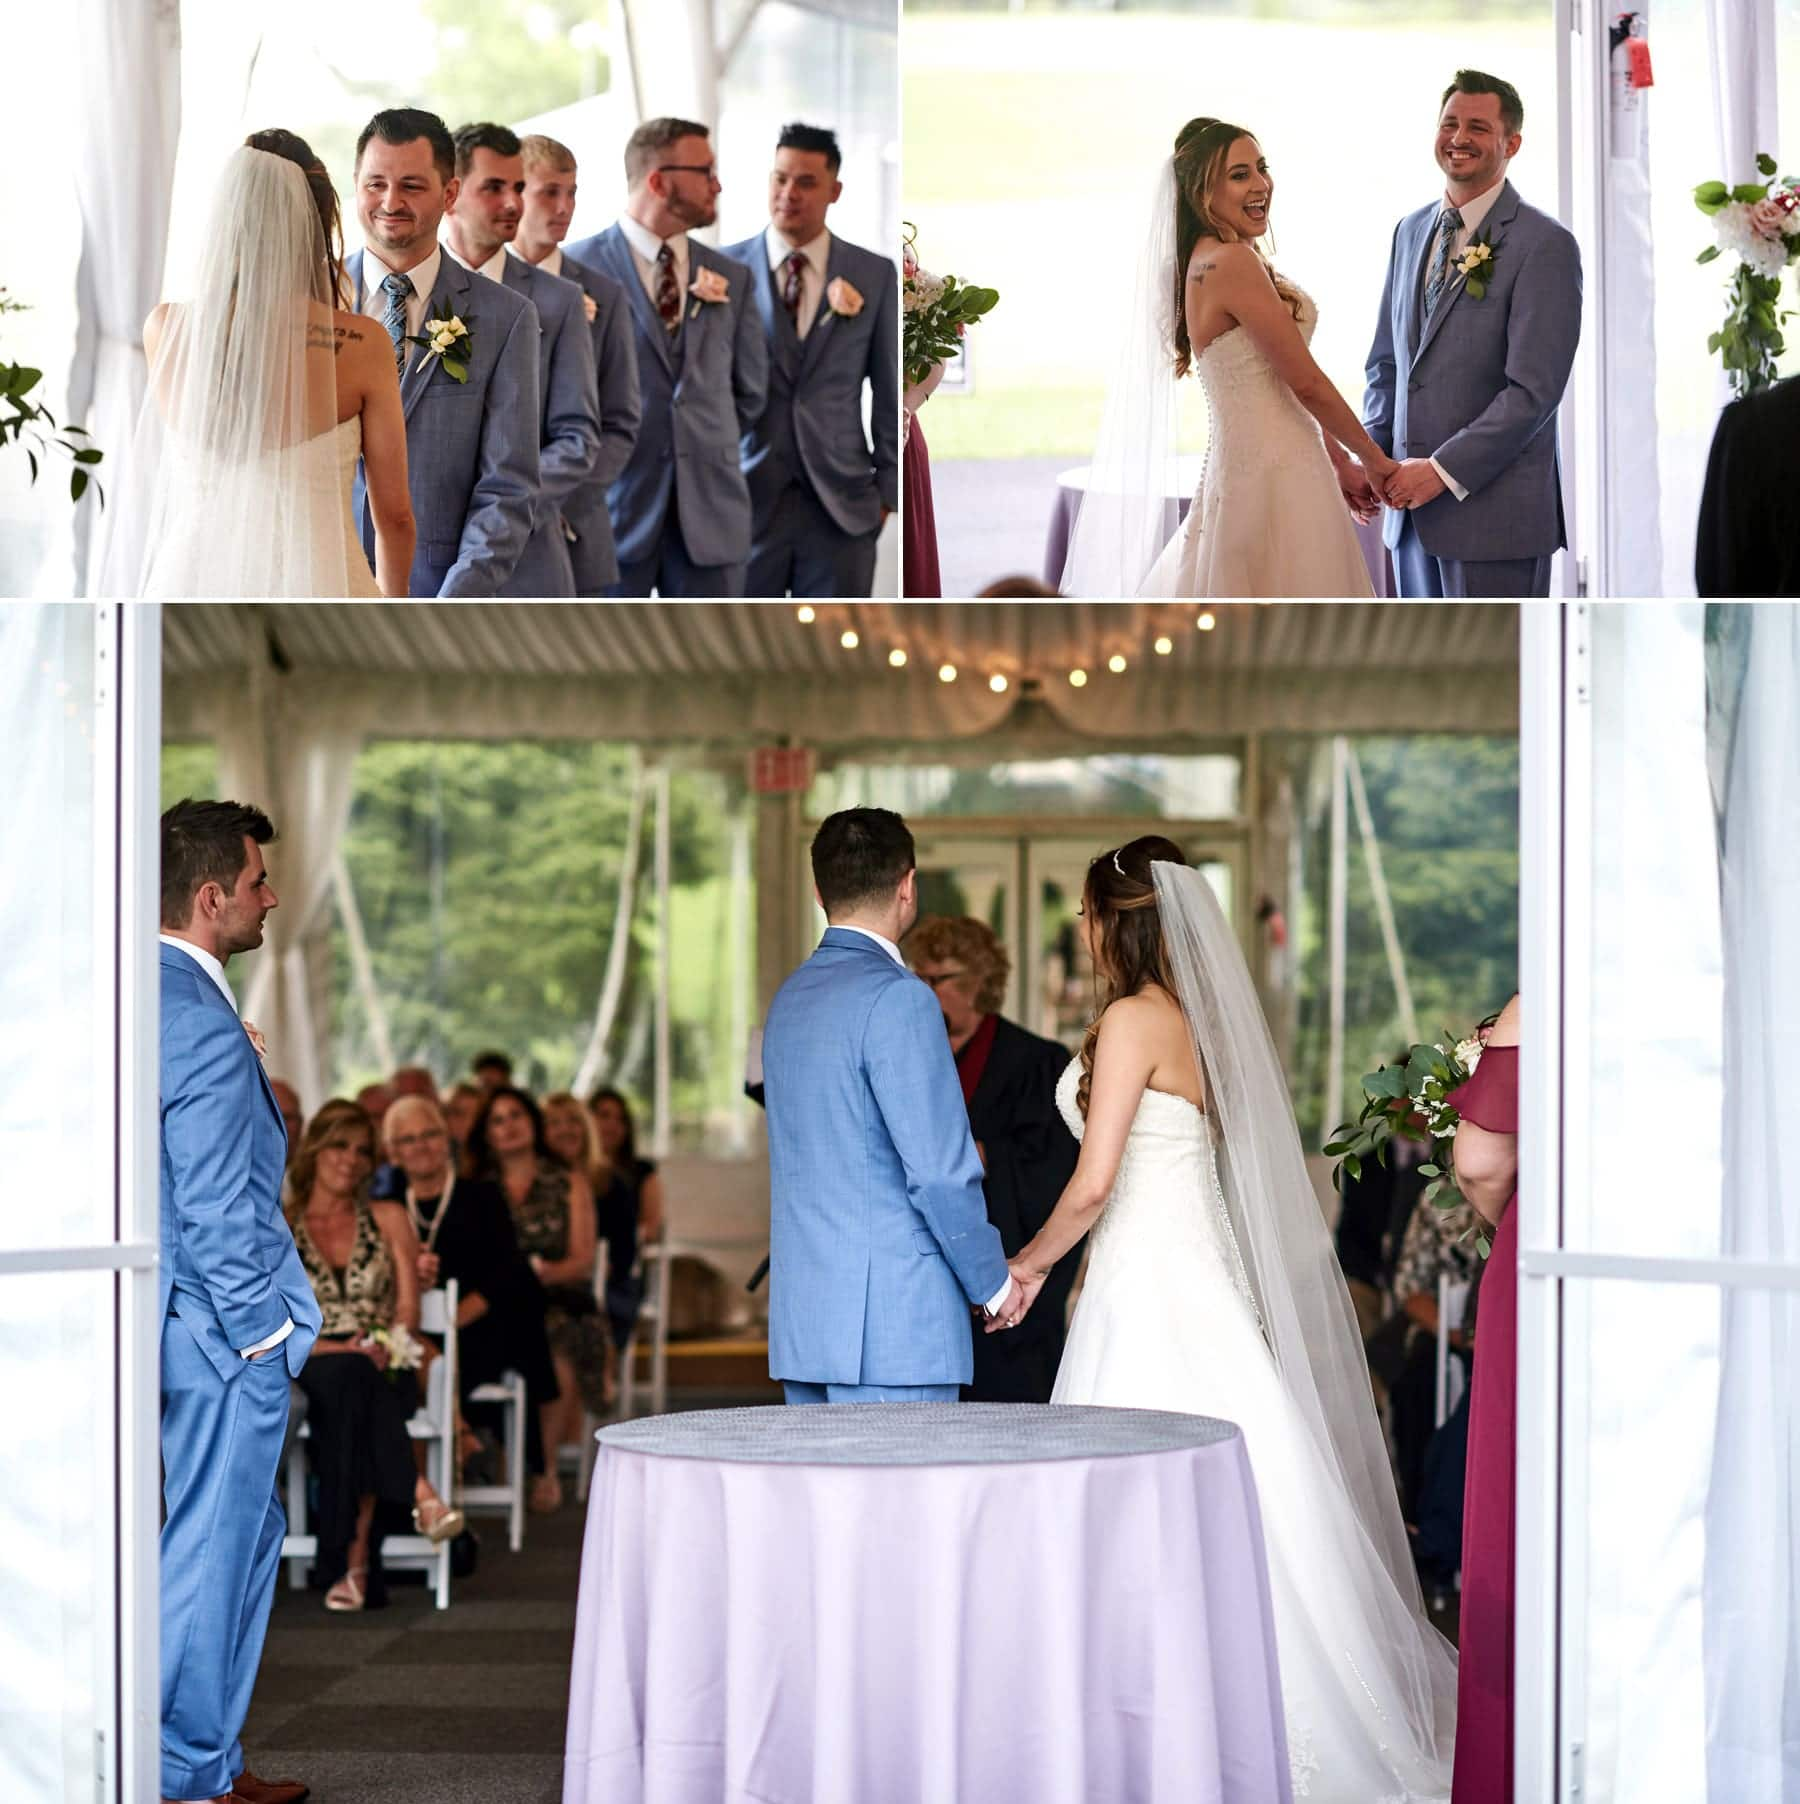 wedding ceremony under the tent at basking ridge country club